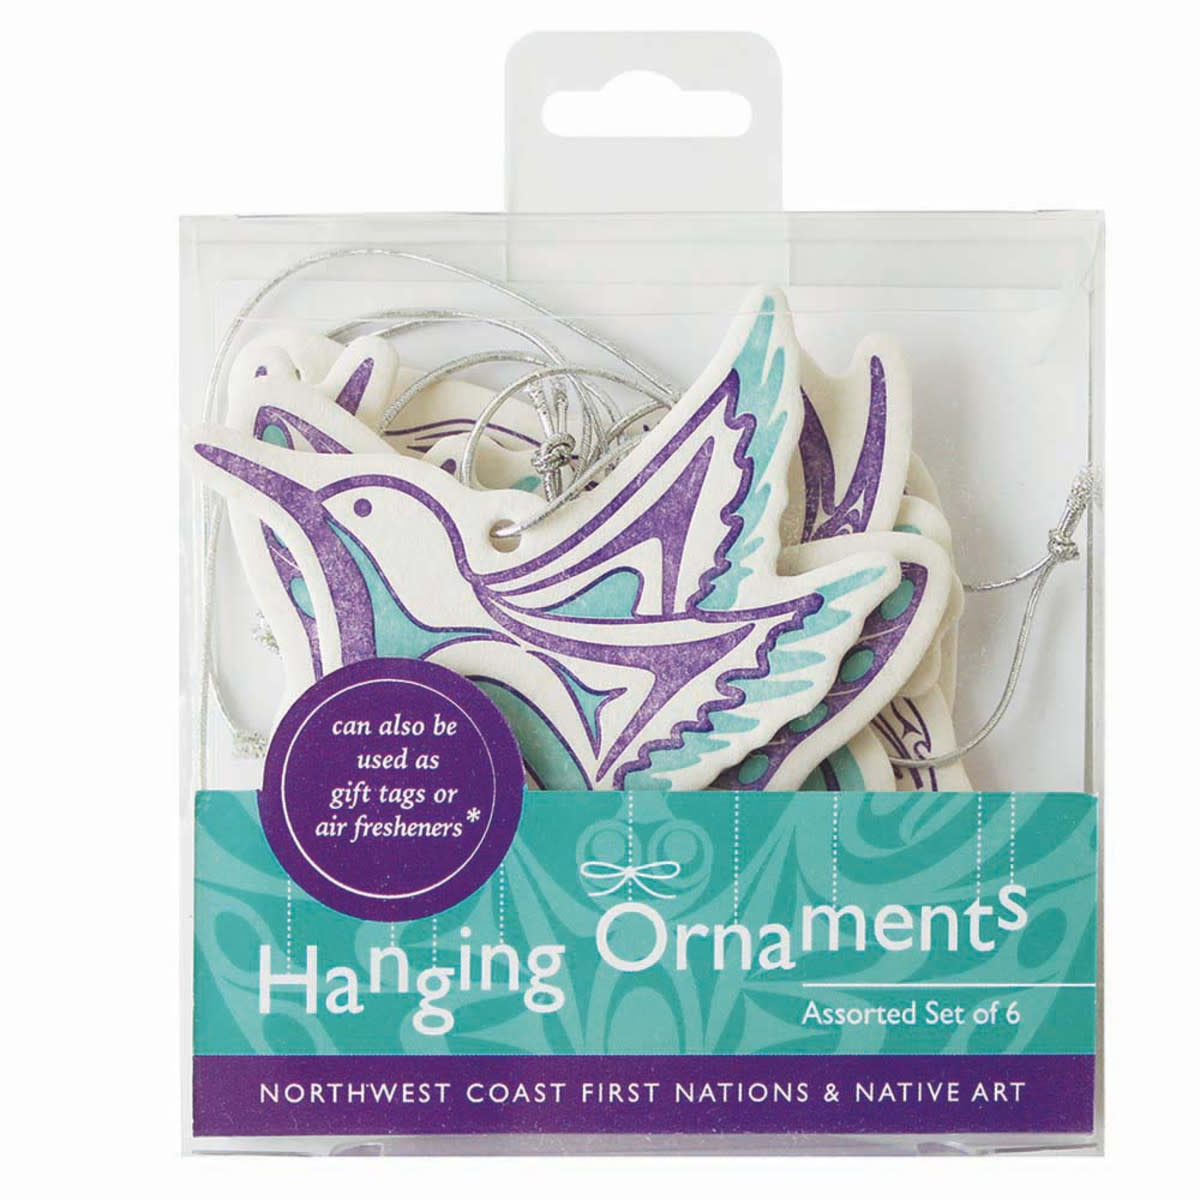 Set of 6 Hanging Ornaments- Assorted Artists-1